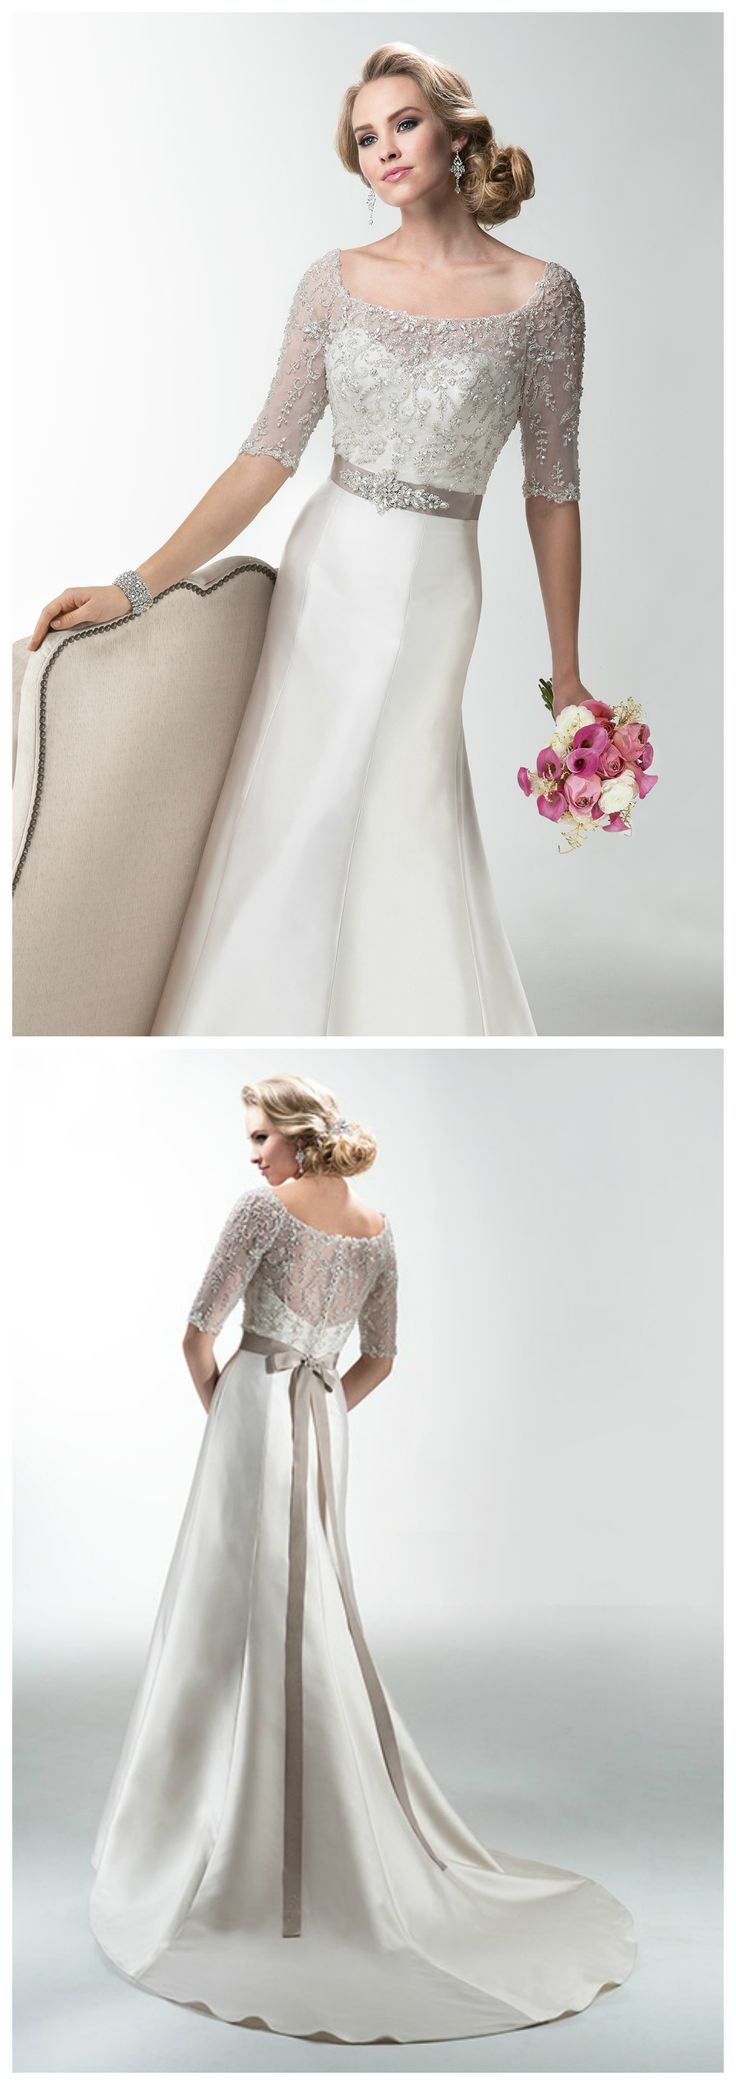 42 best Maggie Sottero images on Pinterest | Cork, Corks and ...